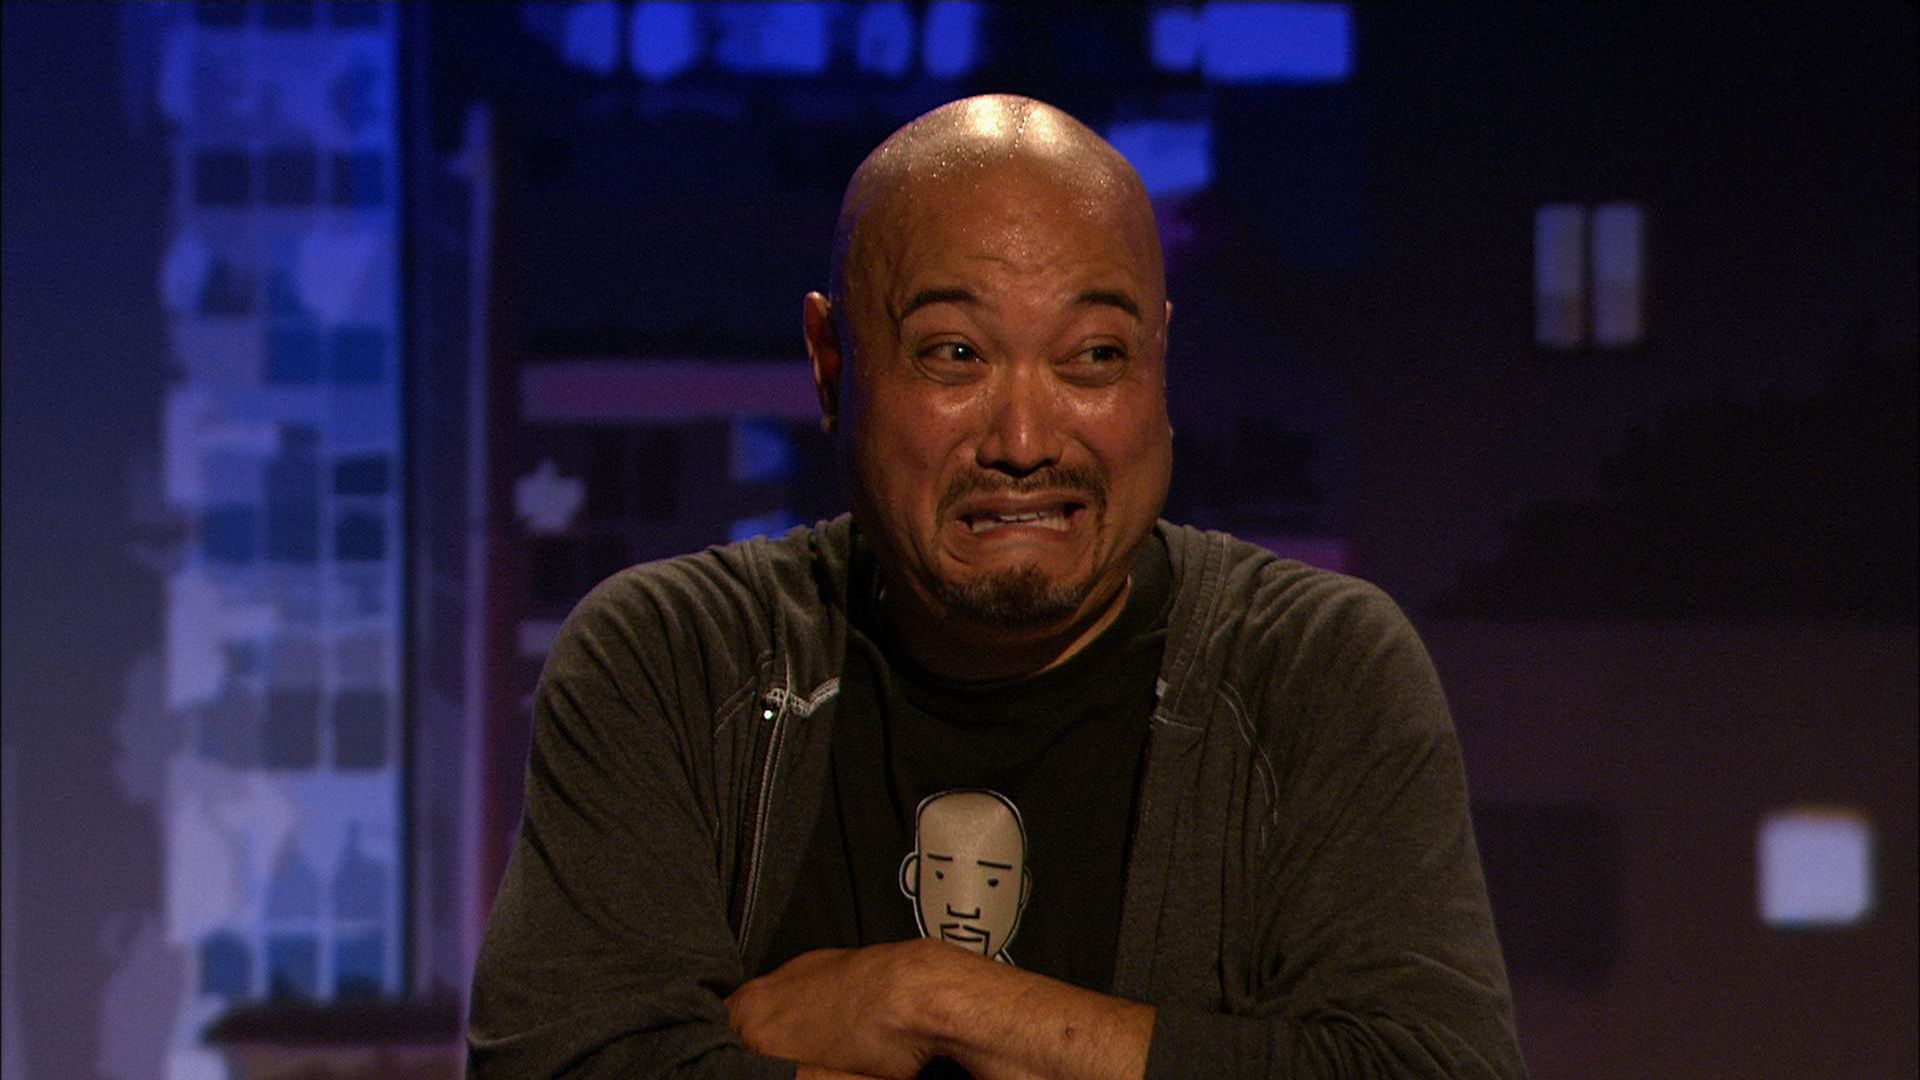 Gabriel Iglesias Presents Stand-Up Revolution: Edwin San Juan - Being Filipino